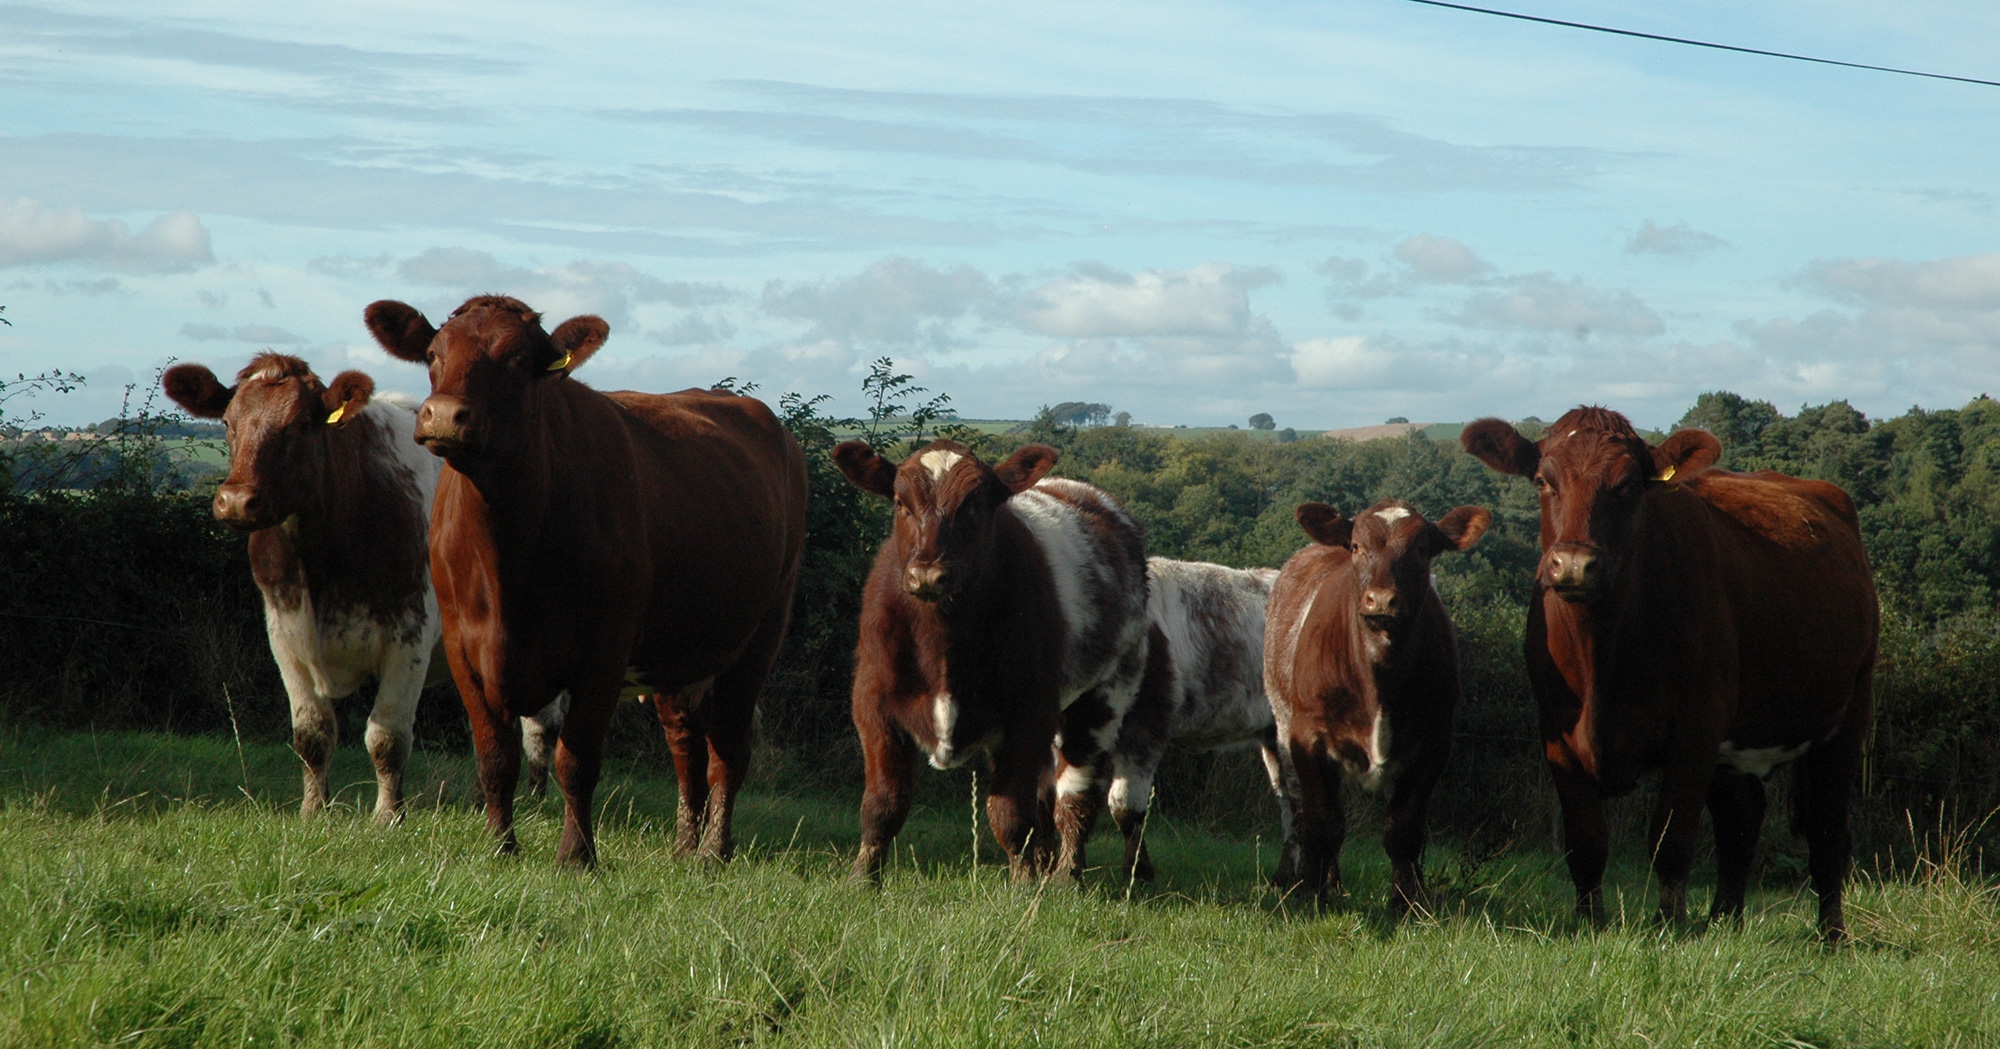 Millerston cows with five month-old calves by Meonhill Charlie Chaplin